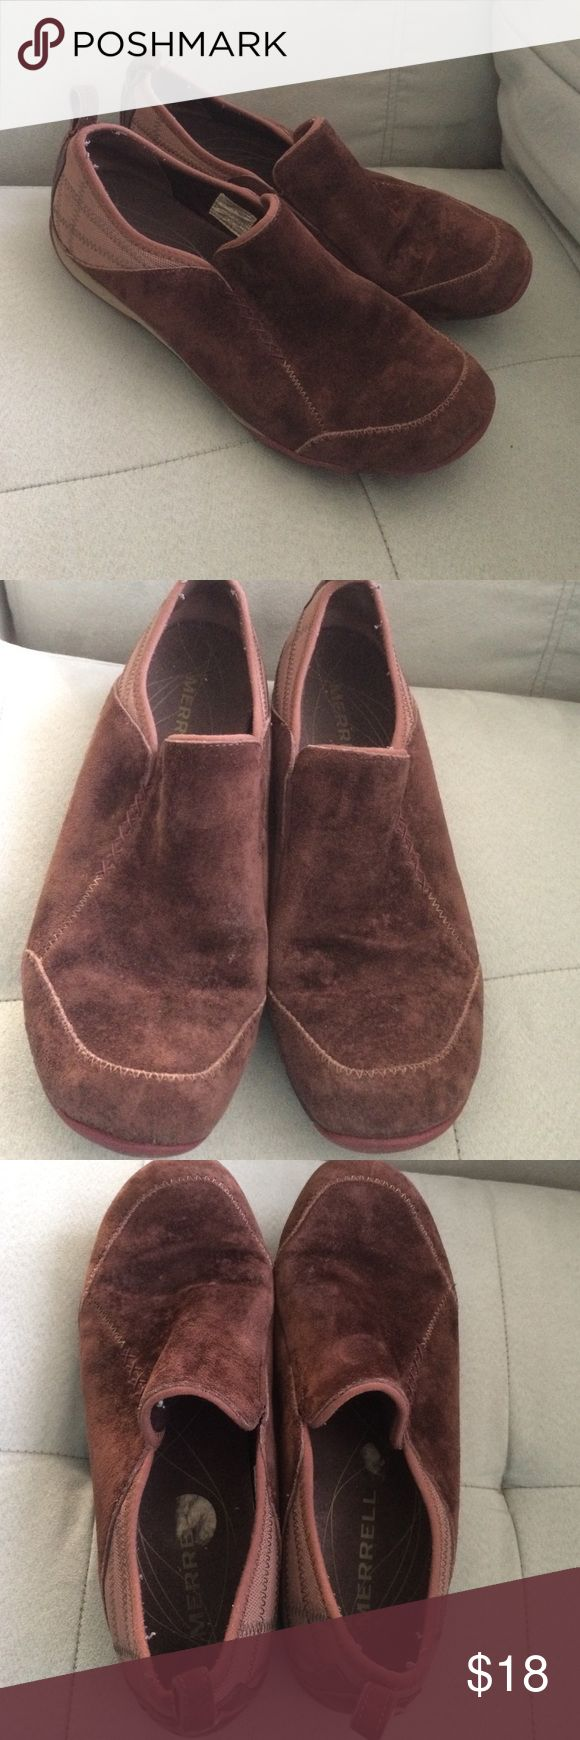 Women's Merrill shoes size 8.5 Women's Merrill shoes size 8.5. In good used condition. They are used so they won't look new. Suede material. Brown and burgundy in color. Comes from smoke free and pet free home. Merrell Shoes Flats & Loafers